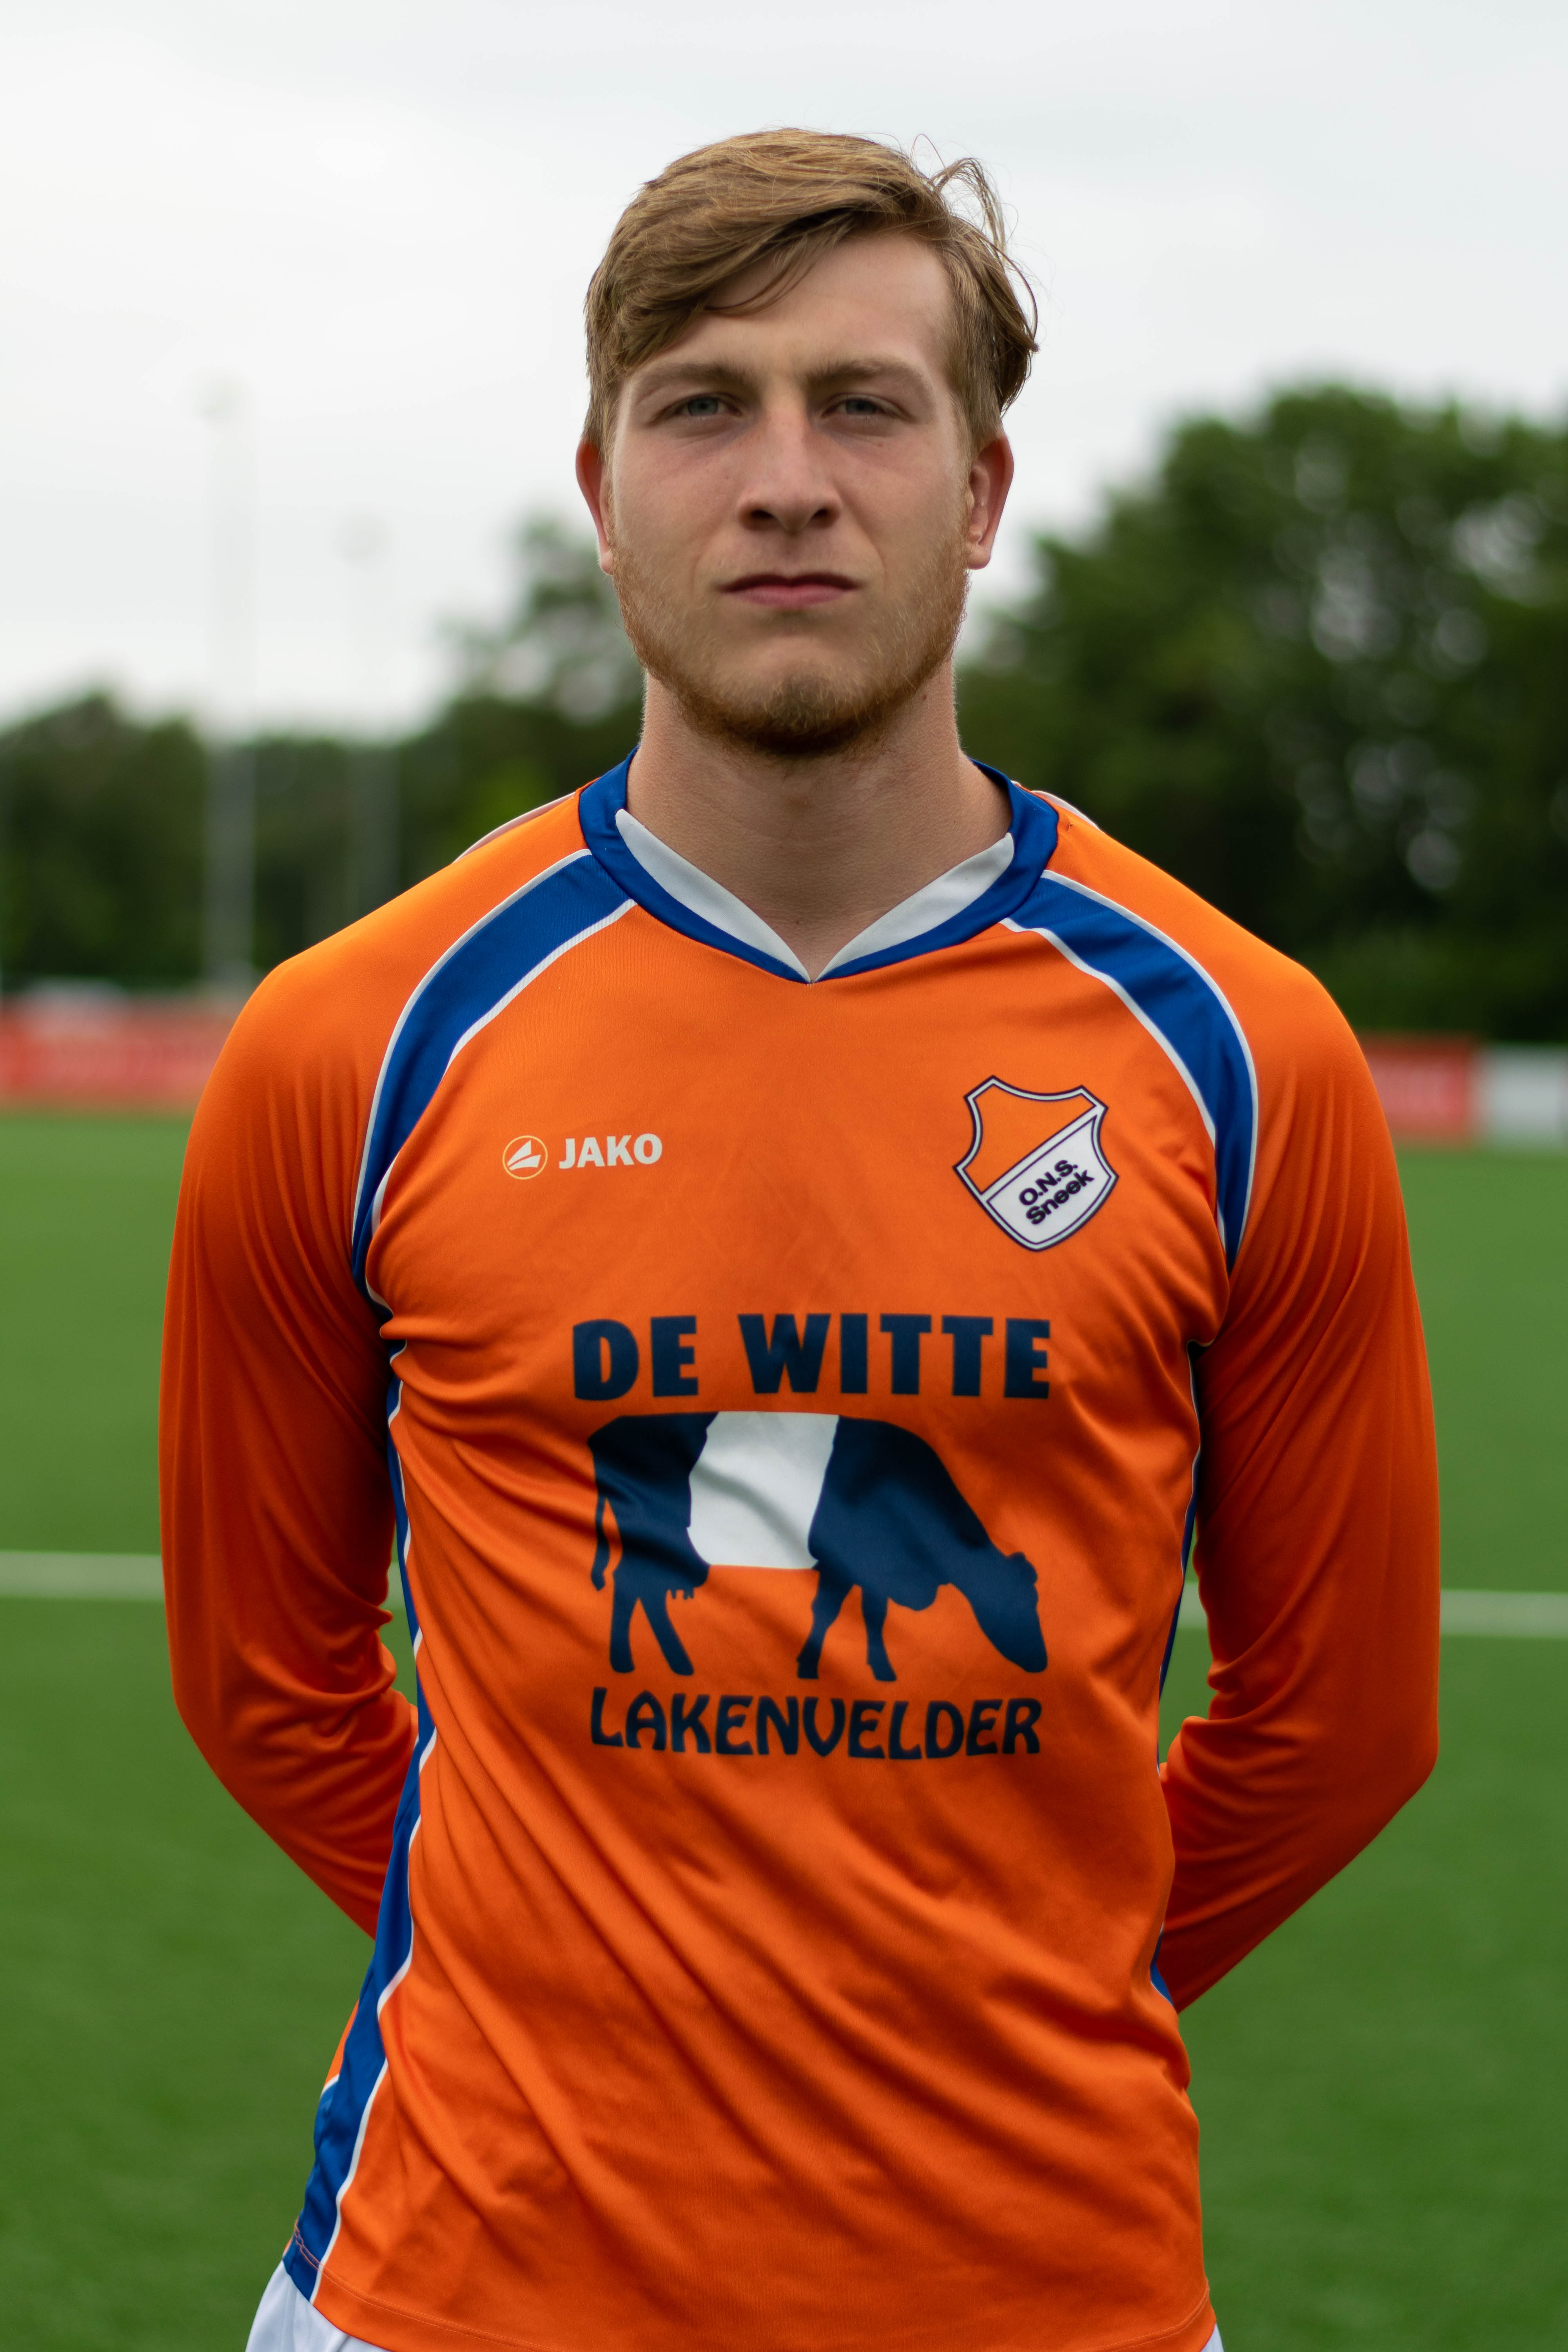 27 - Sam Crowther